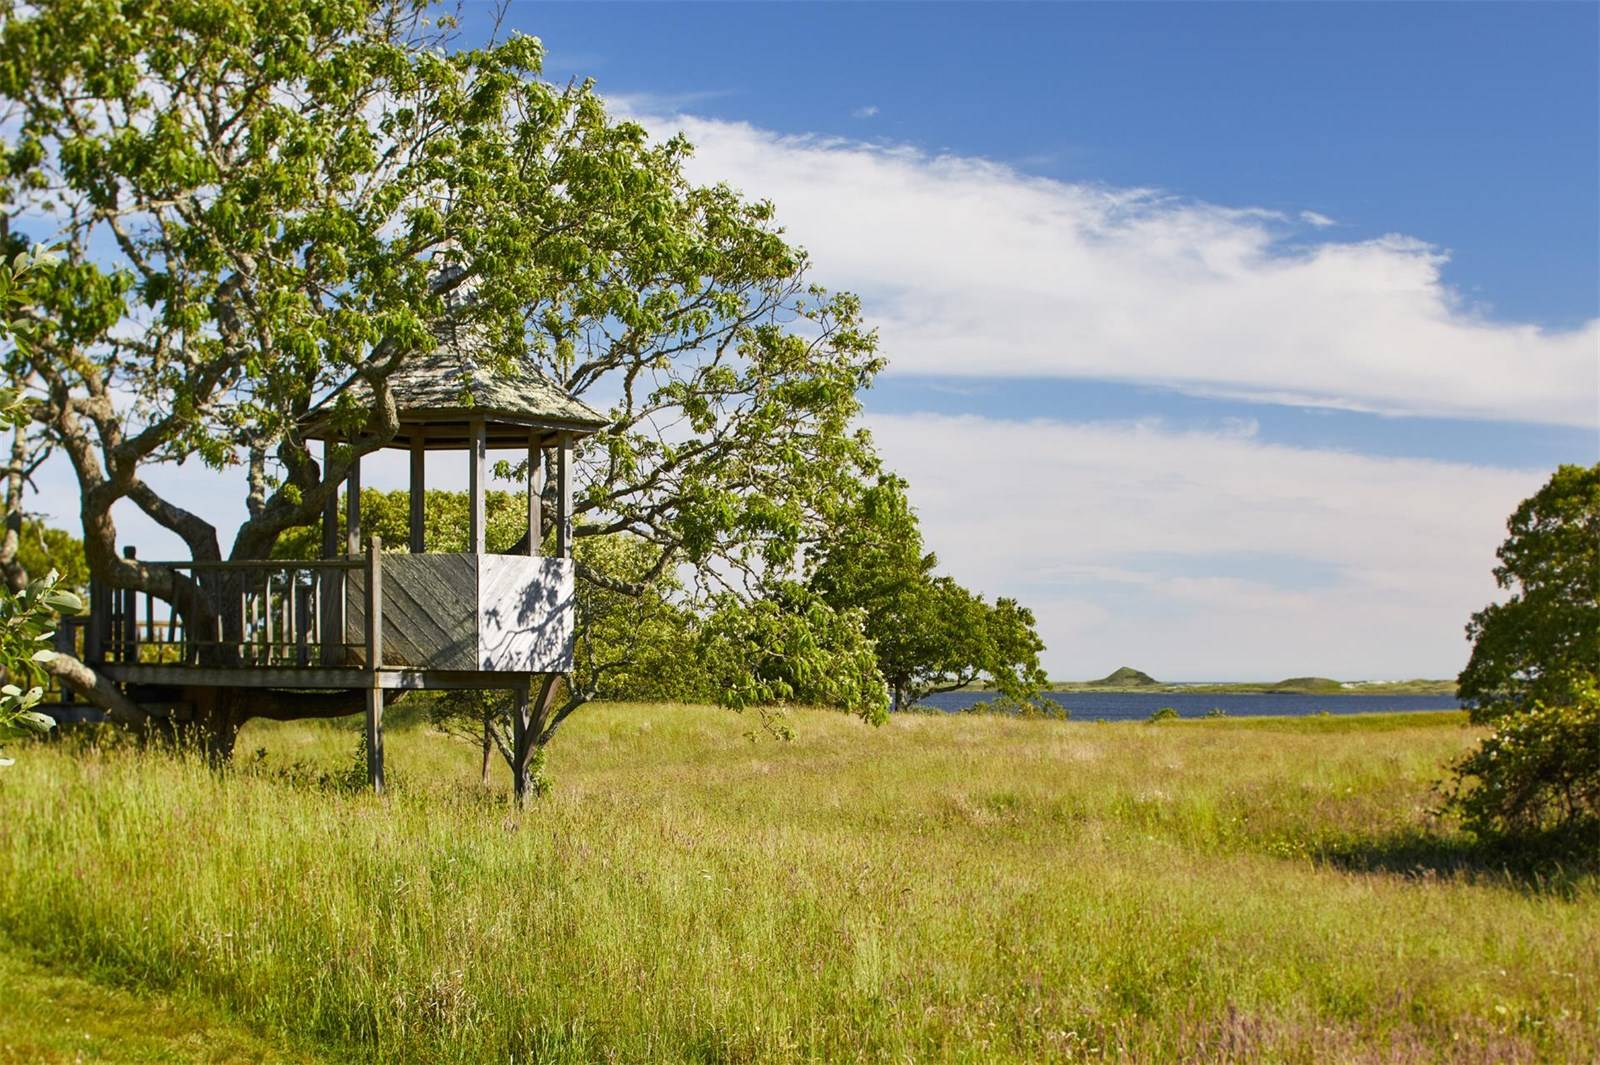 martha's vineyard, jackie kennedy onassis, real estate overview, shoreline, dunes, treehouse